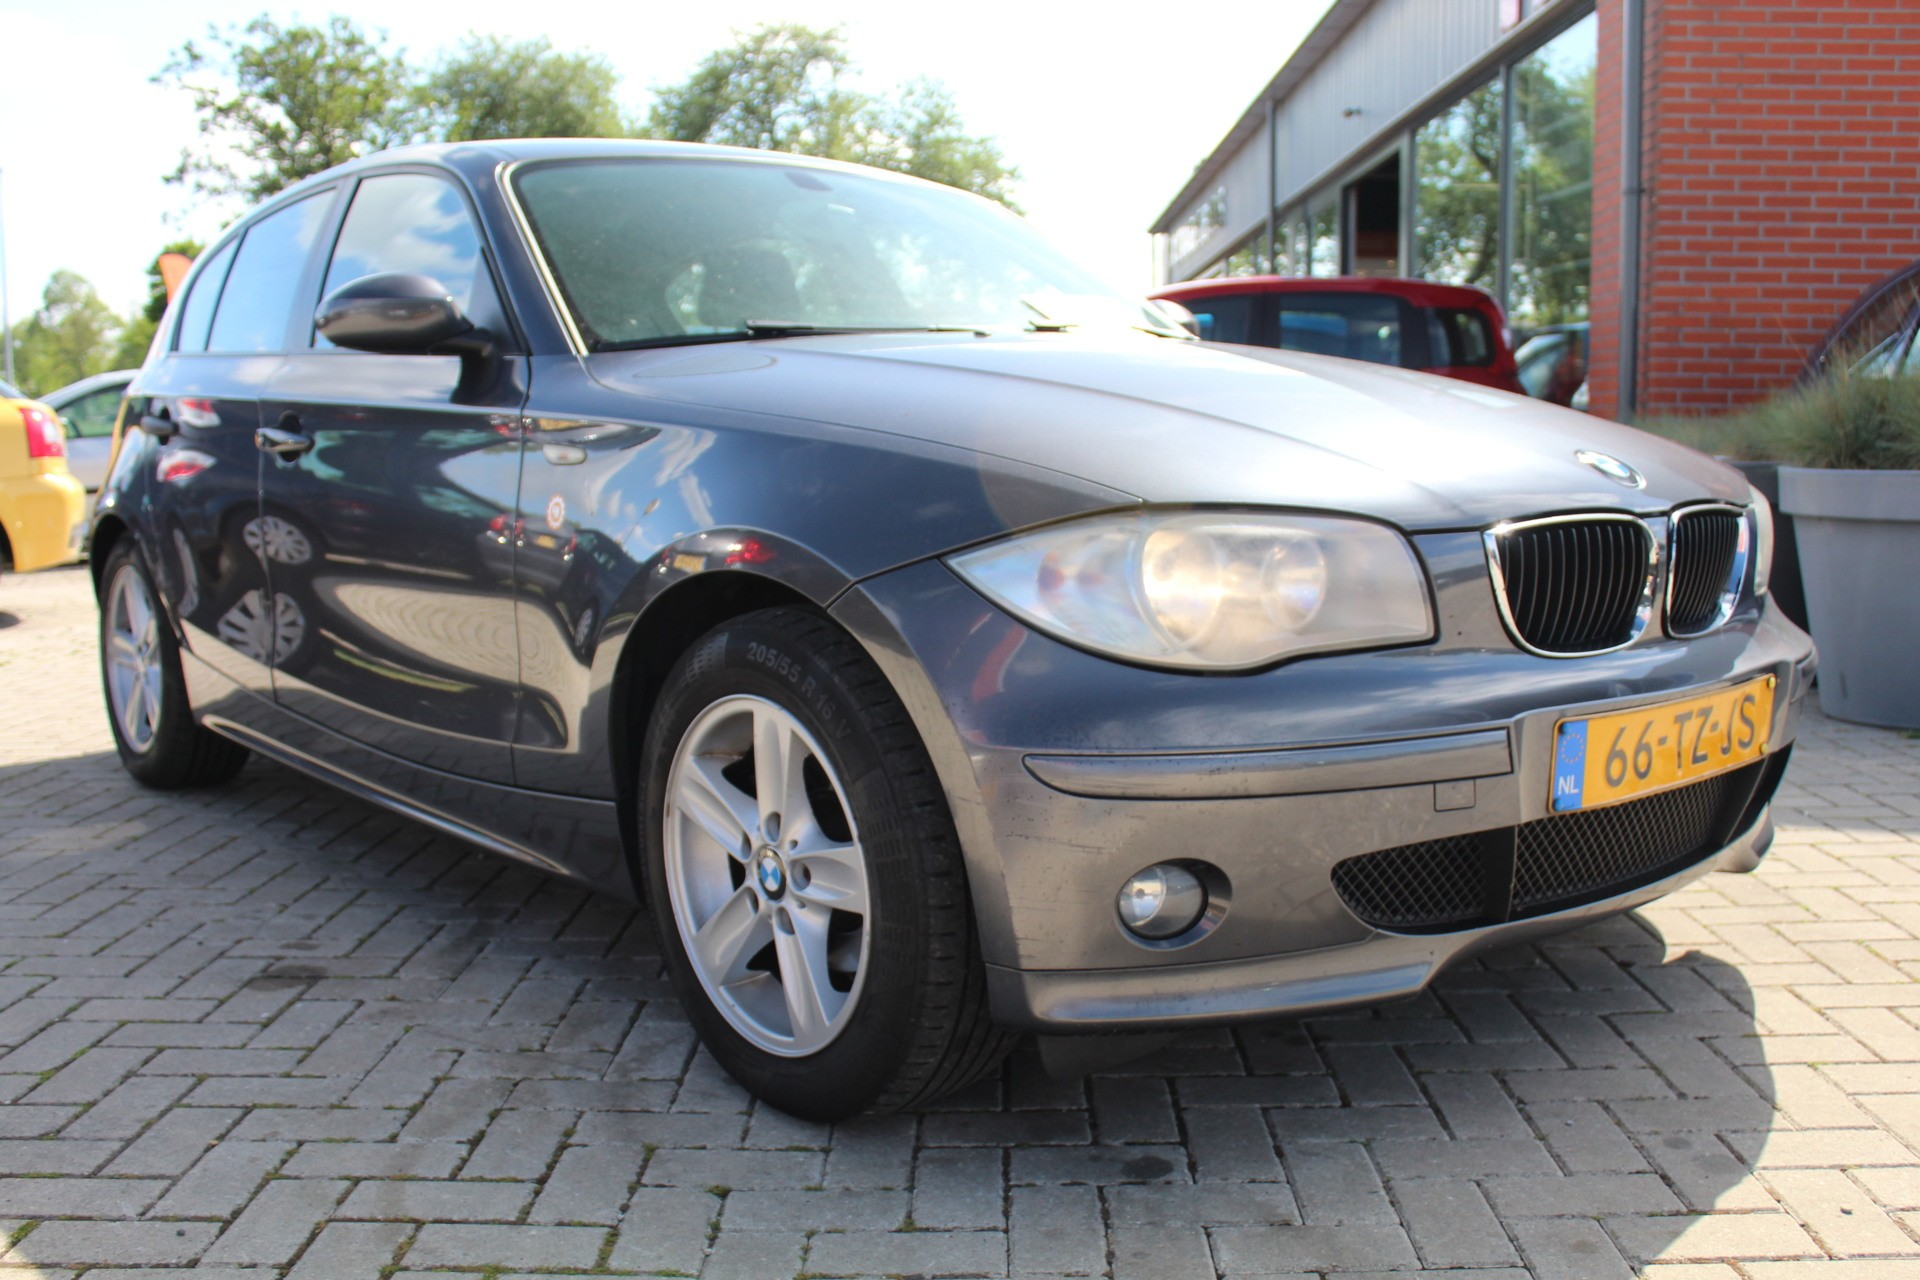 Caroutlet Groningen - BMW 1-serie 118i Business Line   AIRCO   NW KETTING   INRUILKOOPJE